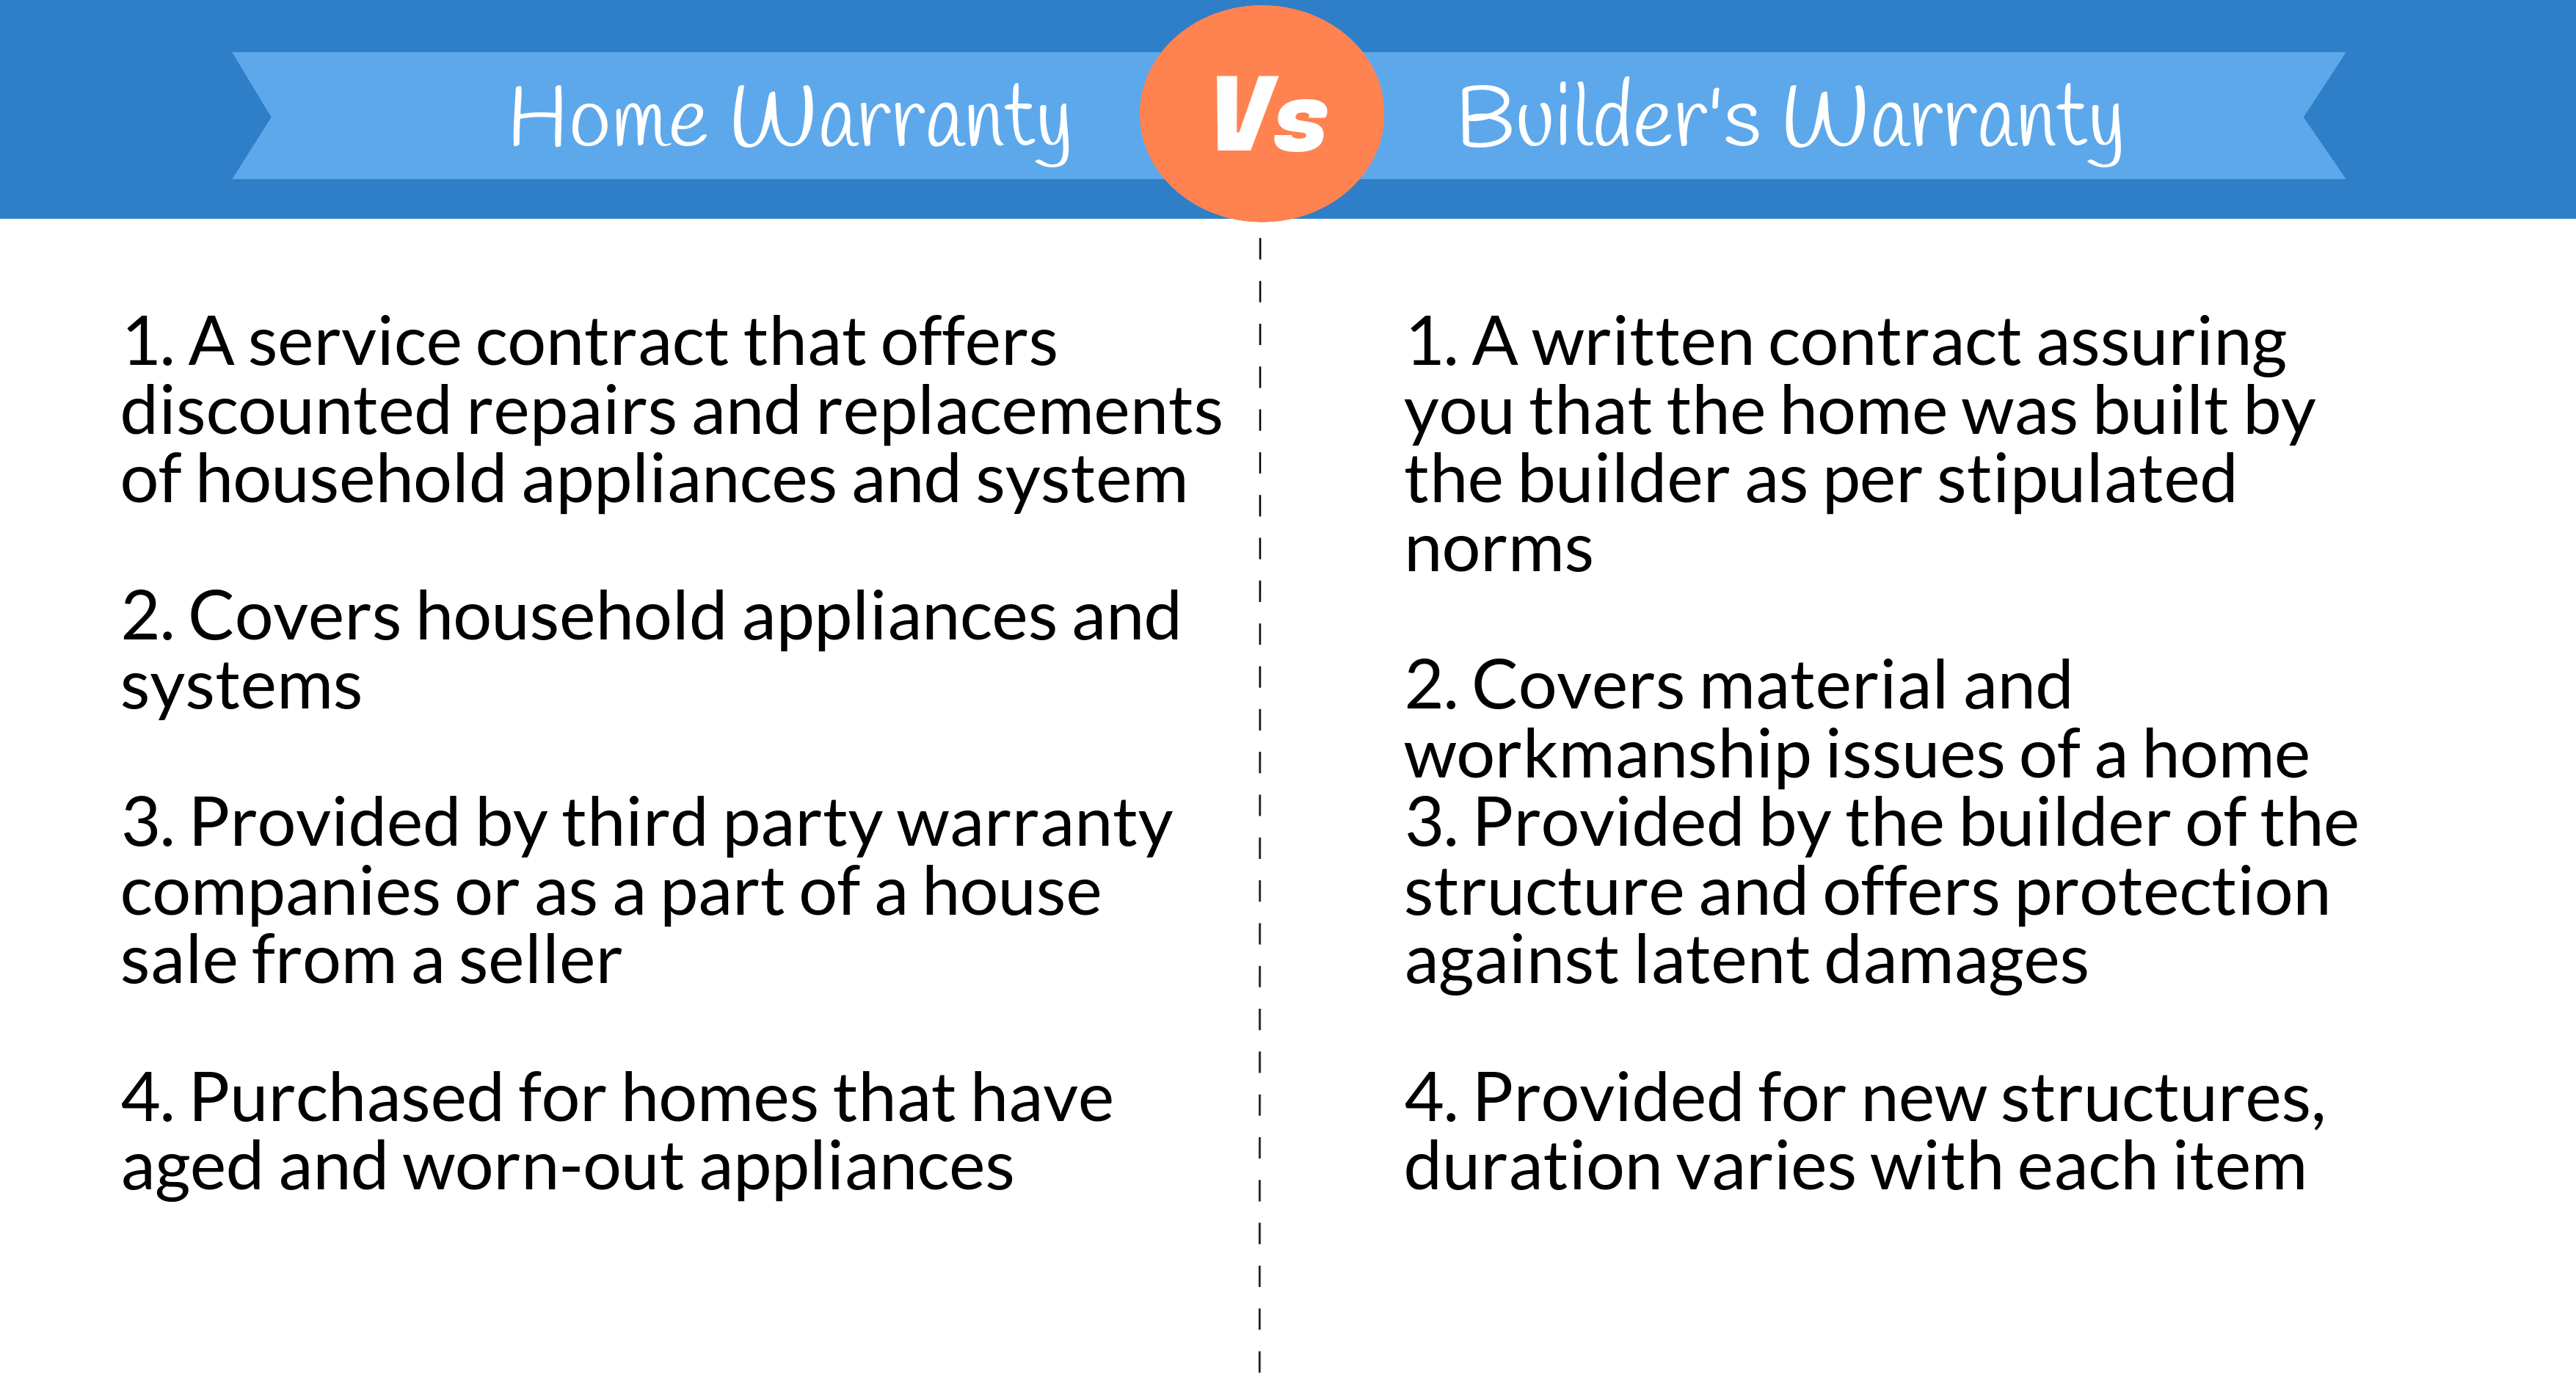 Home warranty Vs. Builders warranty